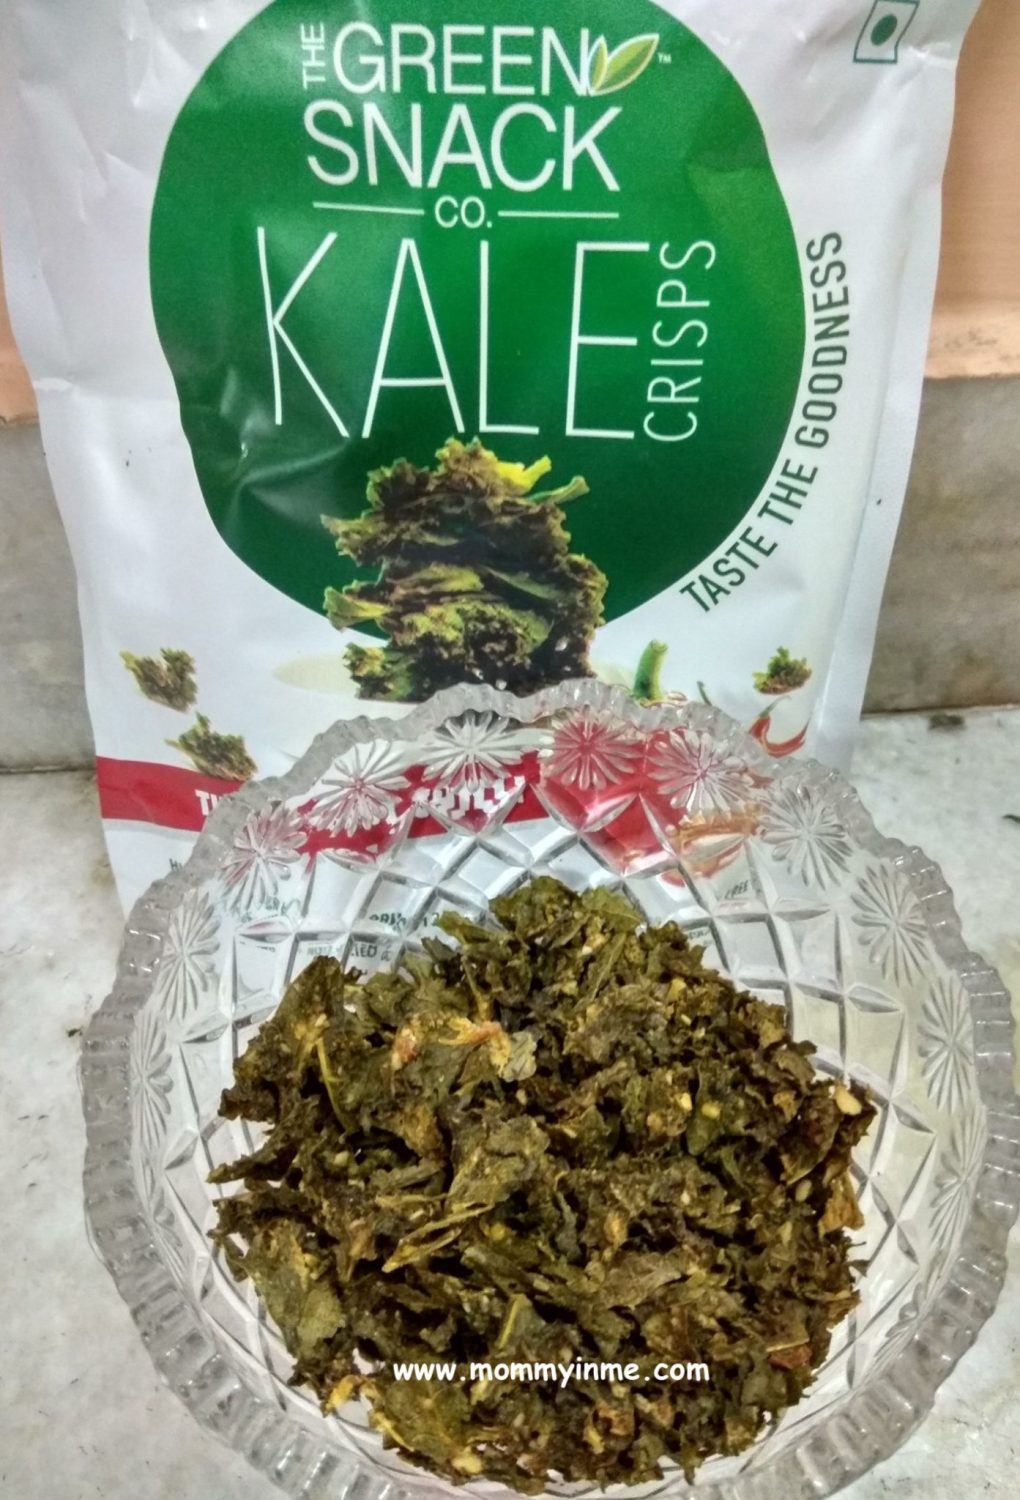 Healthy Snacking is the new mode of life. It is must to consume healthy snacks between the meals rather than the unhealthy oily food to have better metabolism and healthy life. So here is the review of Healthy snacks, puff's, crispy's from The Green Snack co. #kale #healthysnacks #snacking #healthy #wellness #lifestyle #puffs